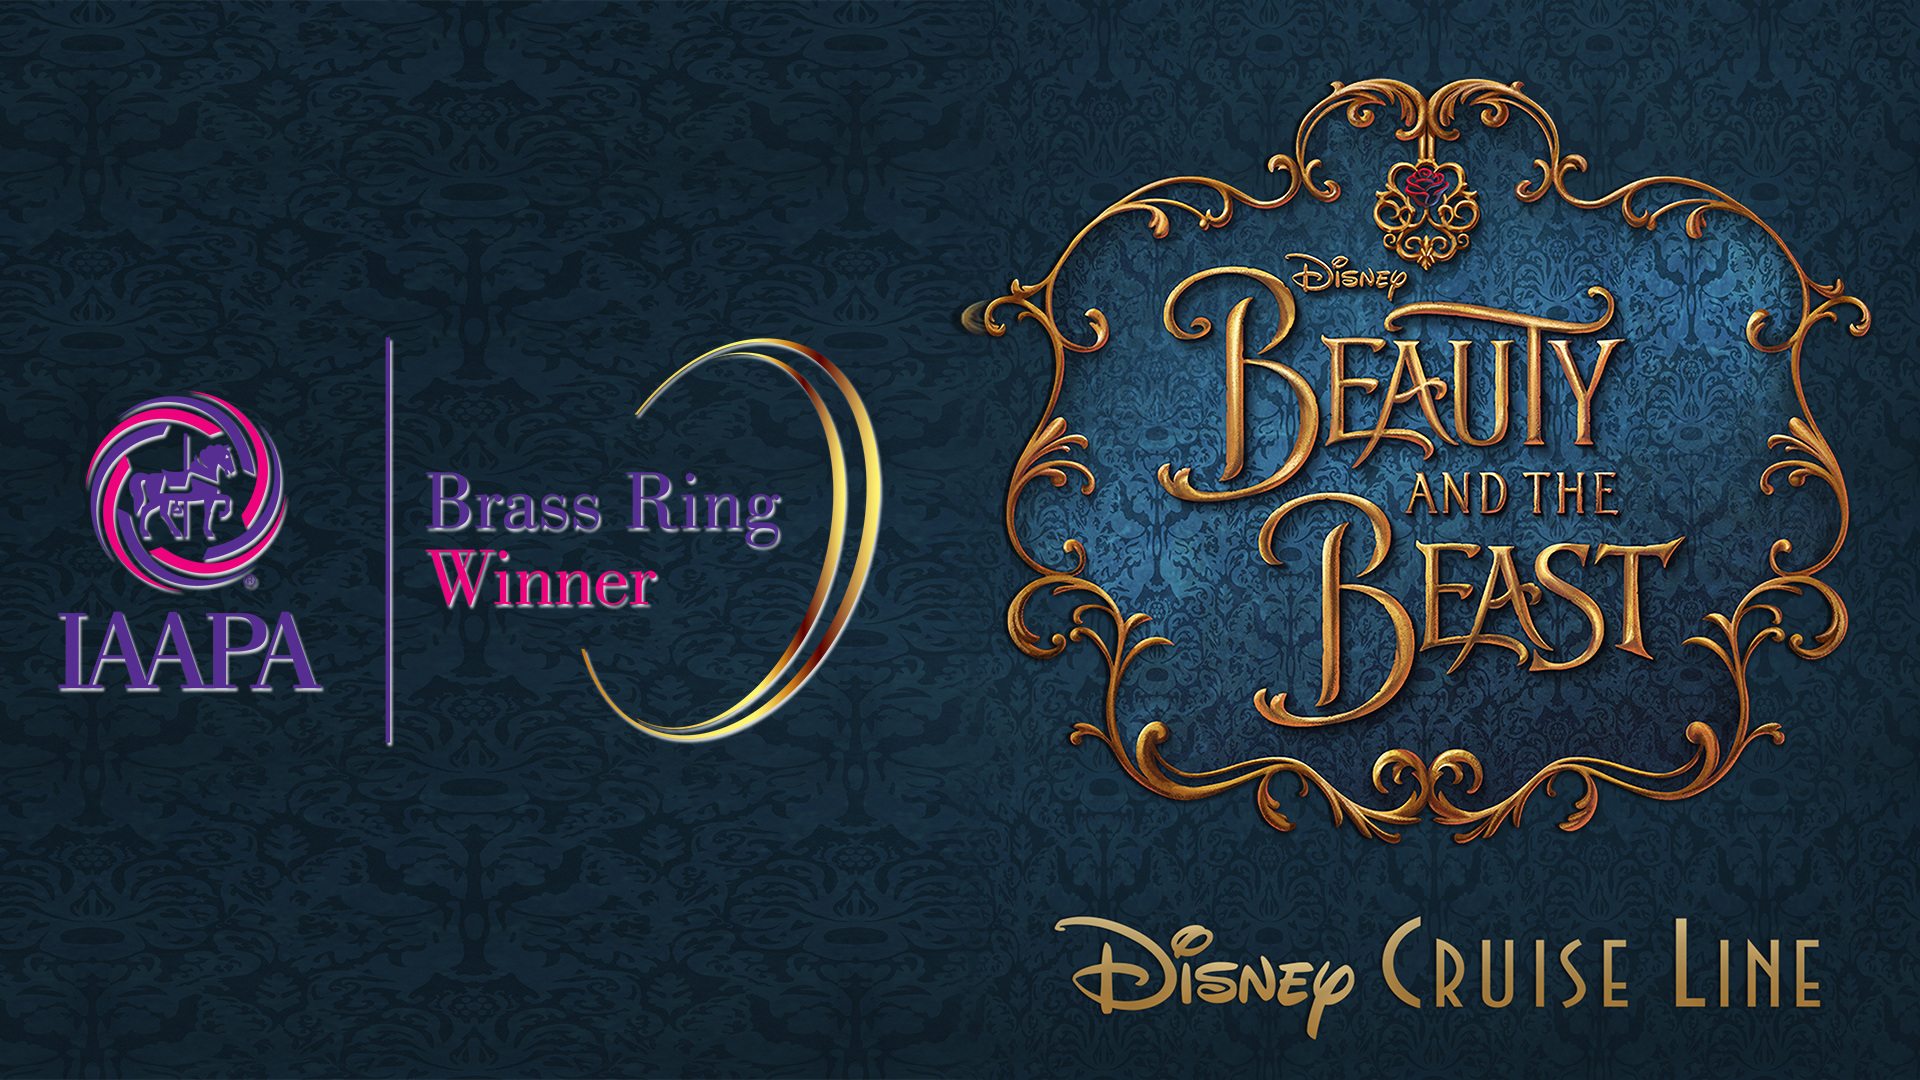 IAAPA BatB 2018 Brass Ring Award Winner